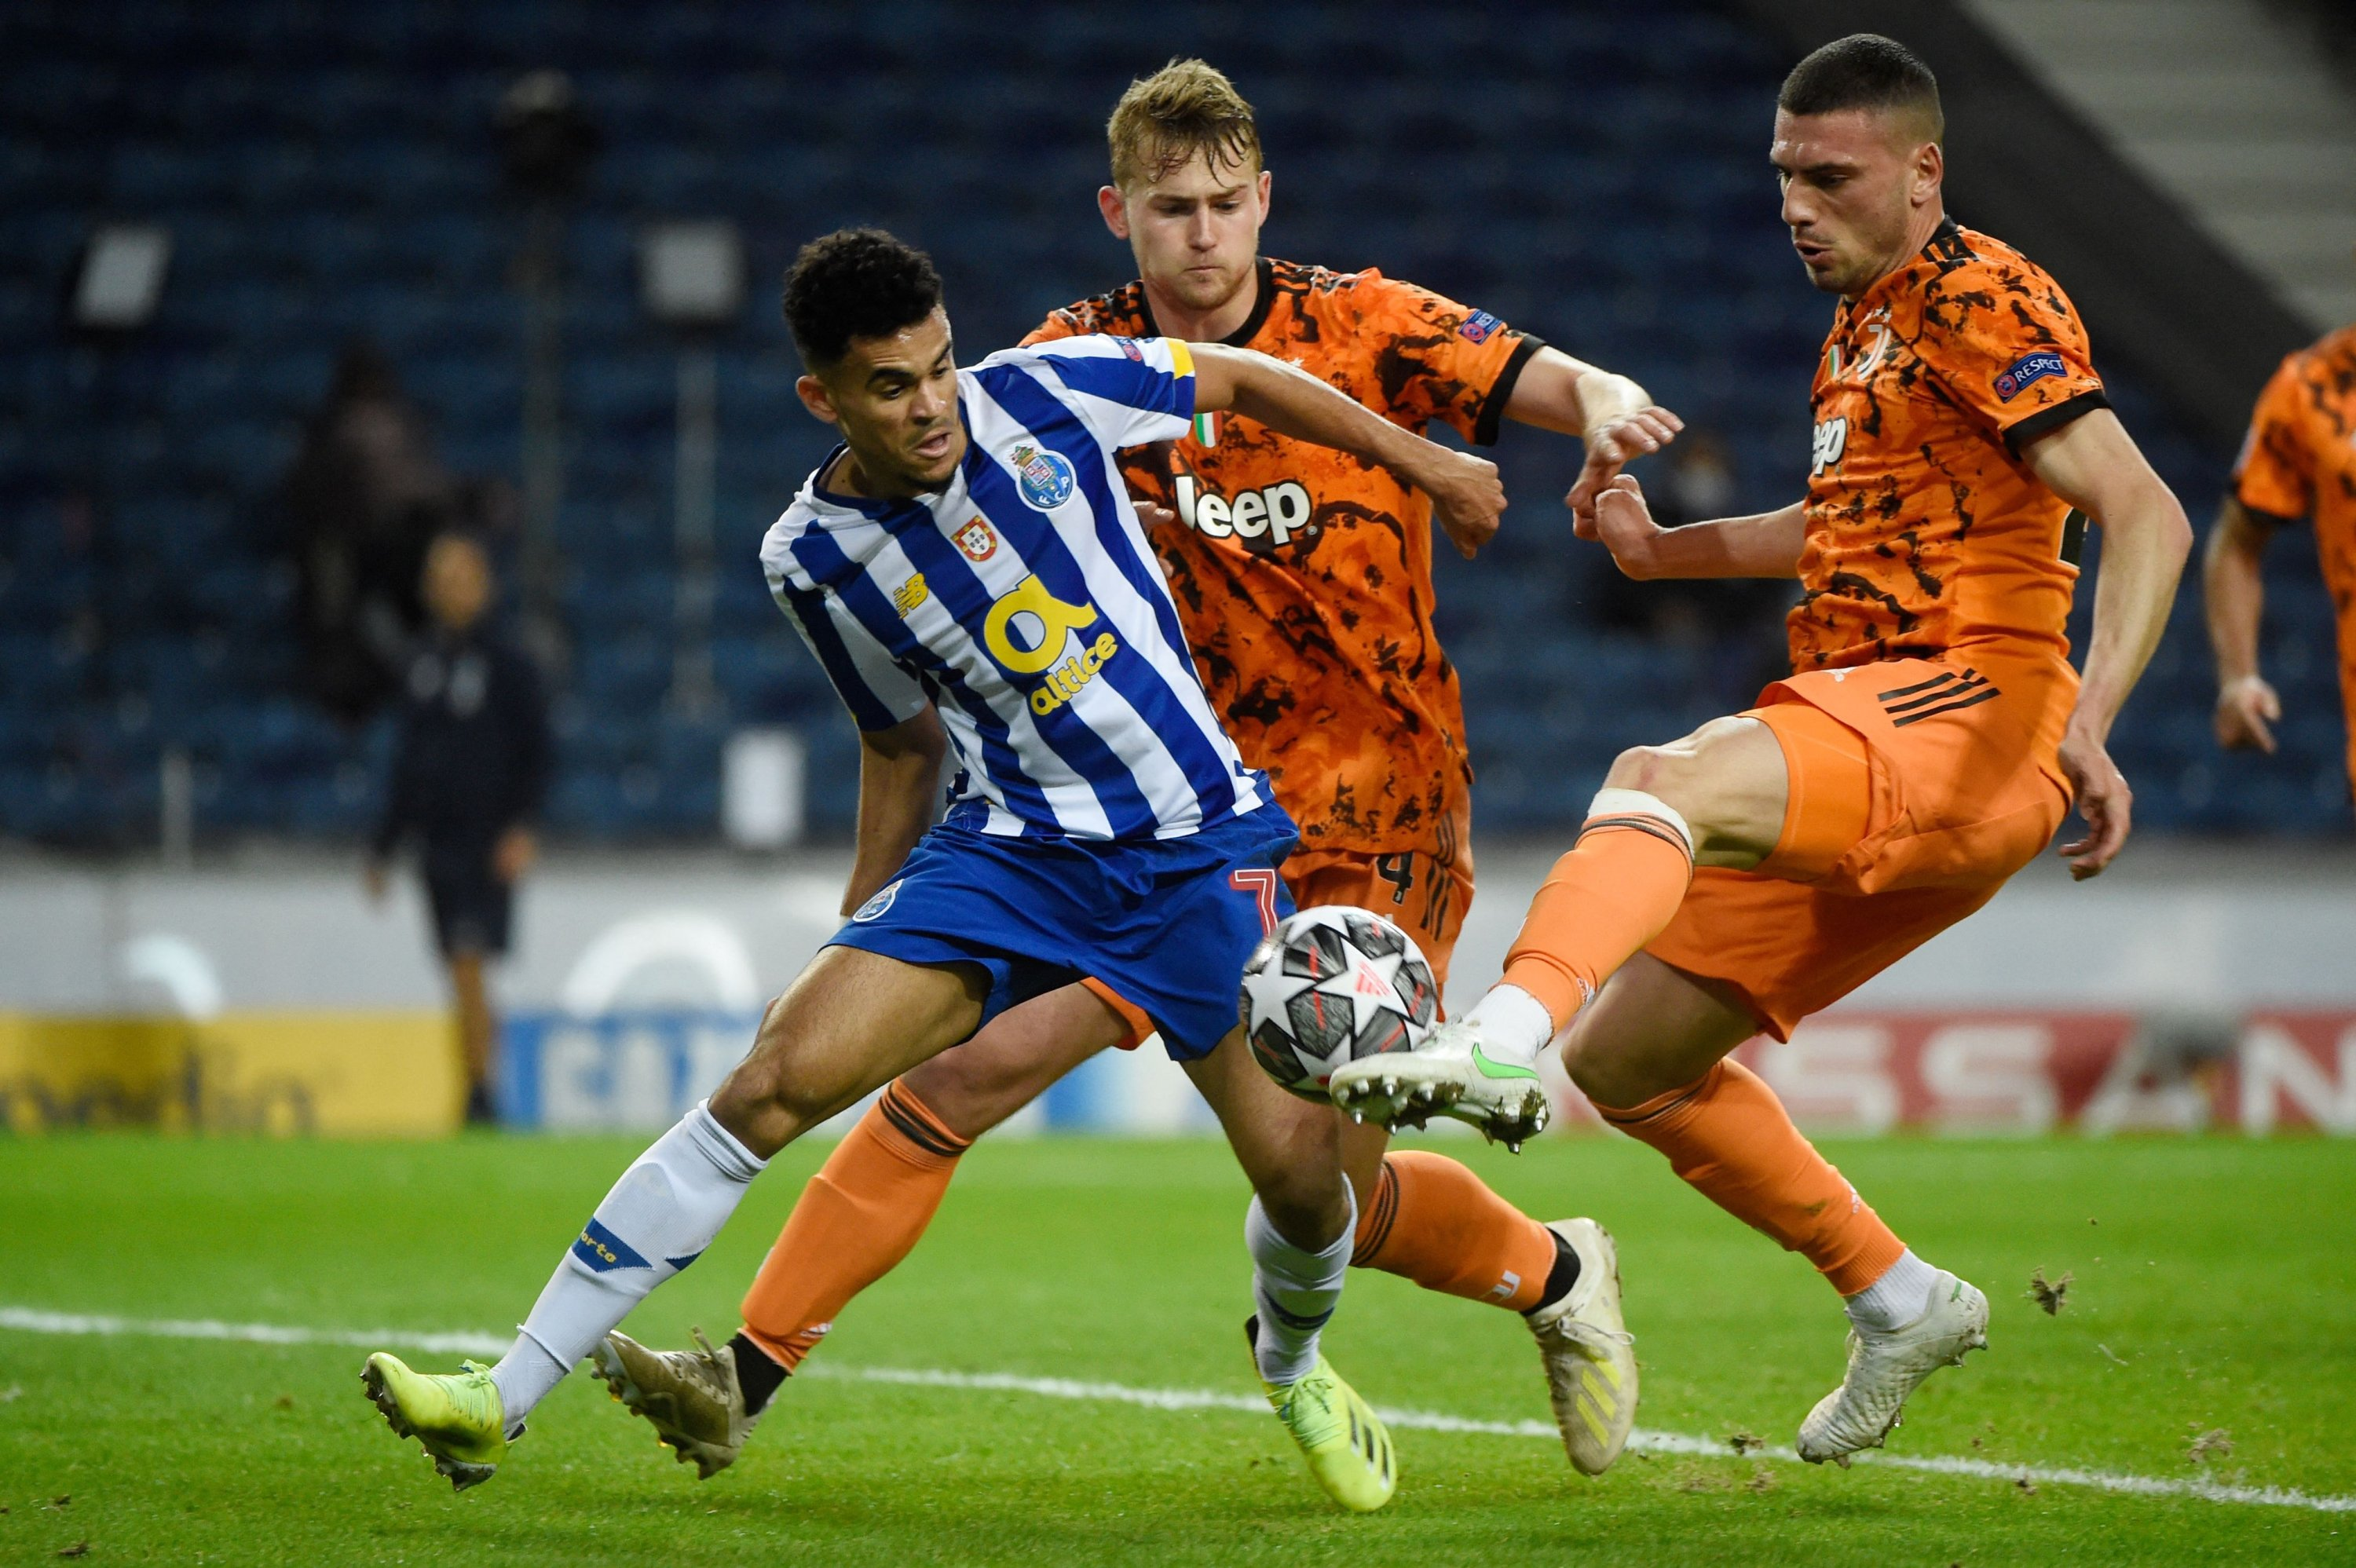 FC Porto's Colombian midfielder Luis Diaz (L) vies with Juventus' Dutch defender Matthijs De Ligt (C) and Turkish defender Merih Demiral during the first leg of a UEFA Champions League round of 16 match at the Dragao stadium, Porto, Portugal, Feb. 17, 2021. (AFP Photo)